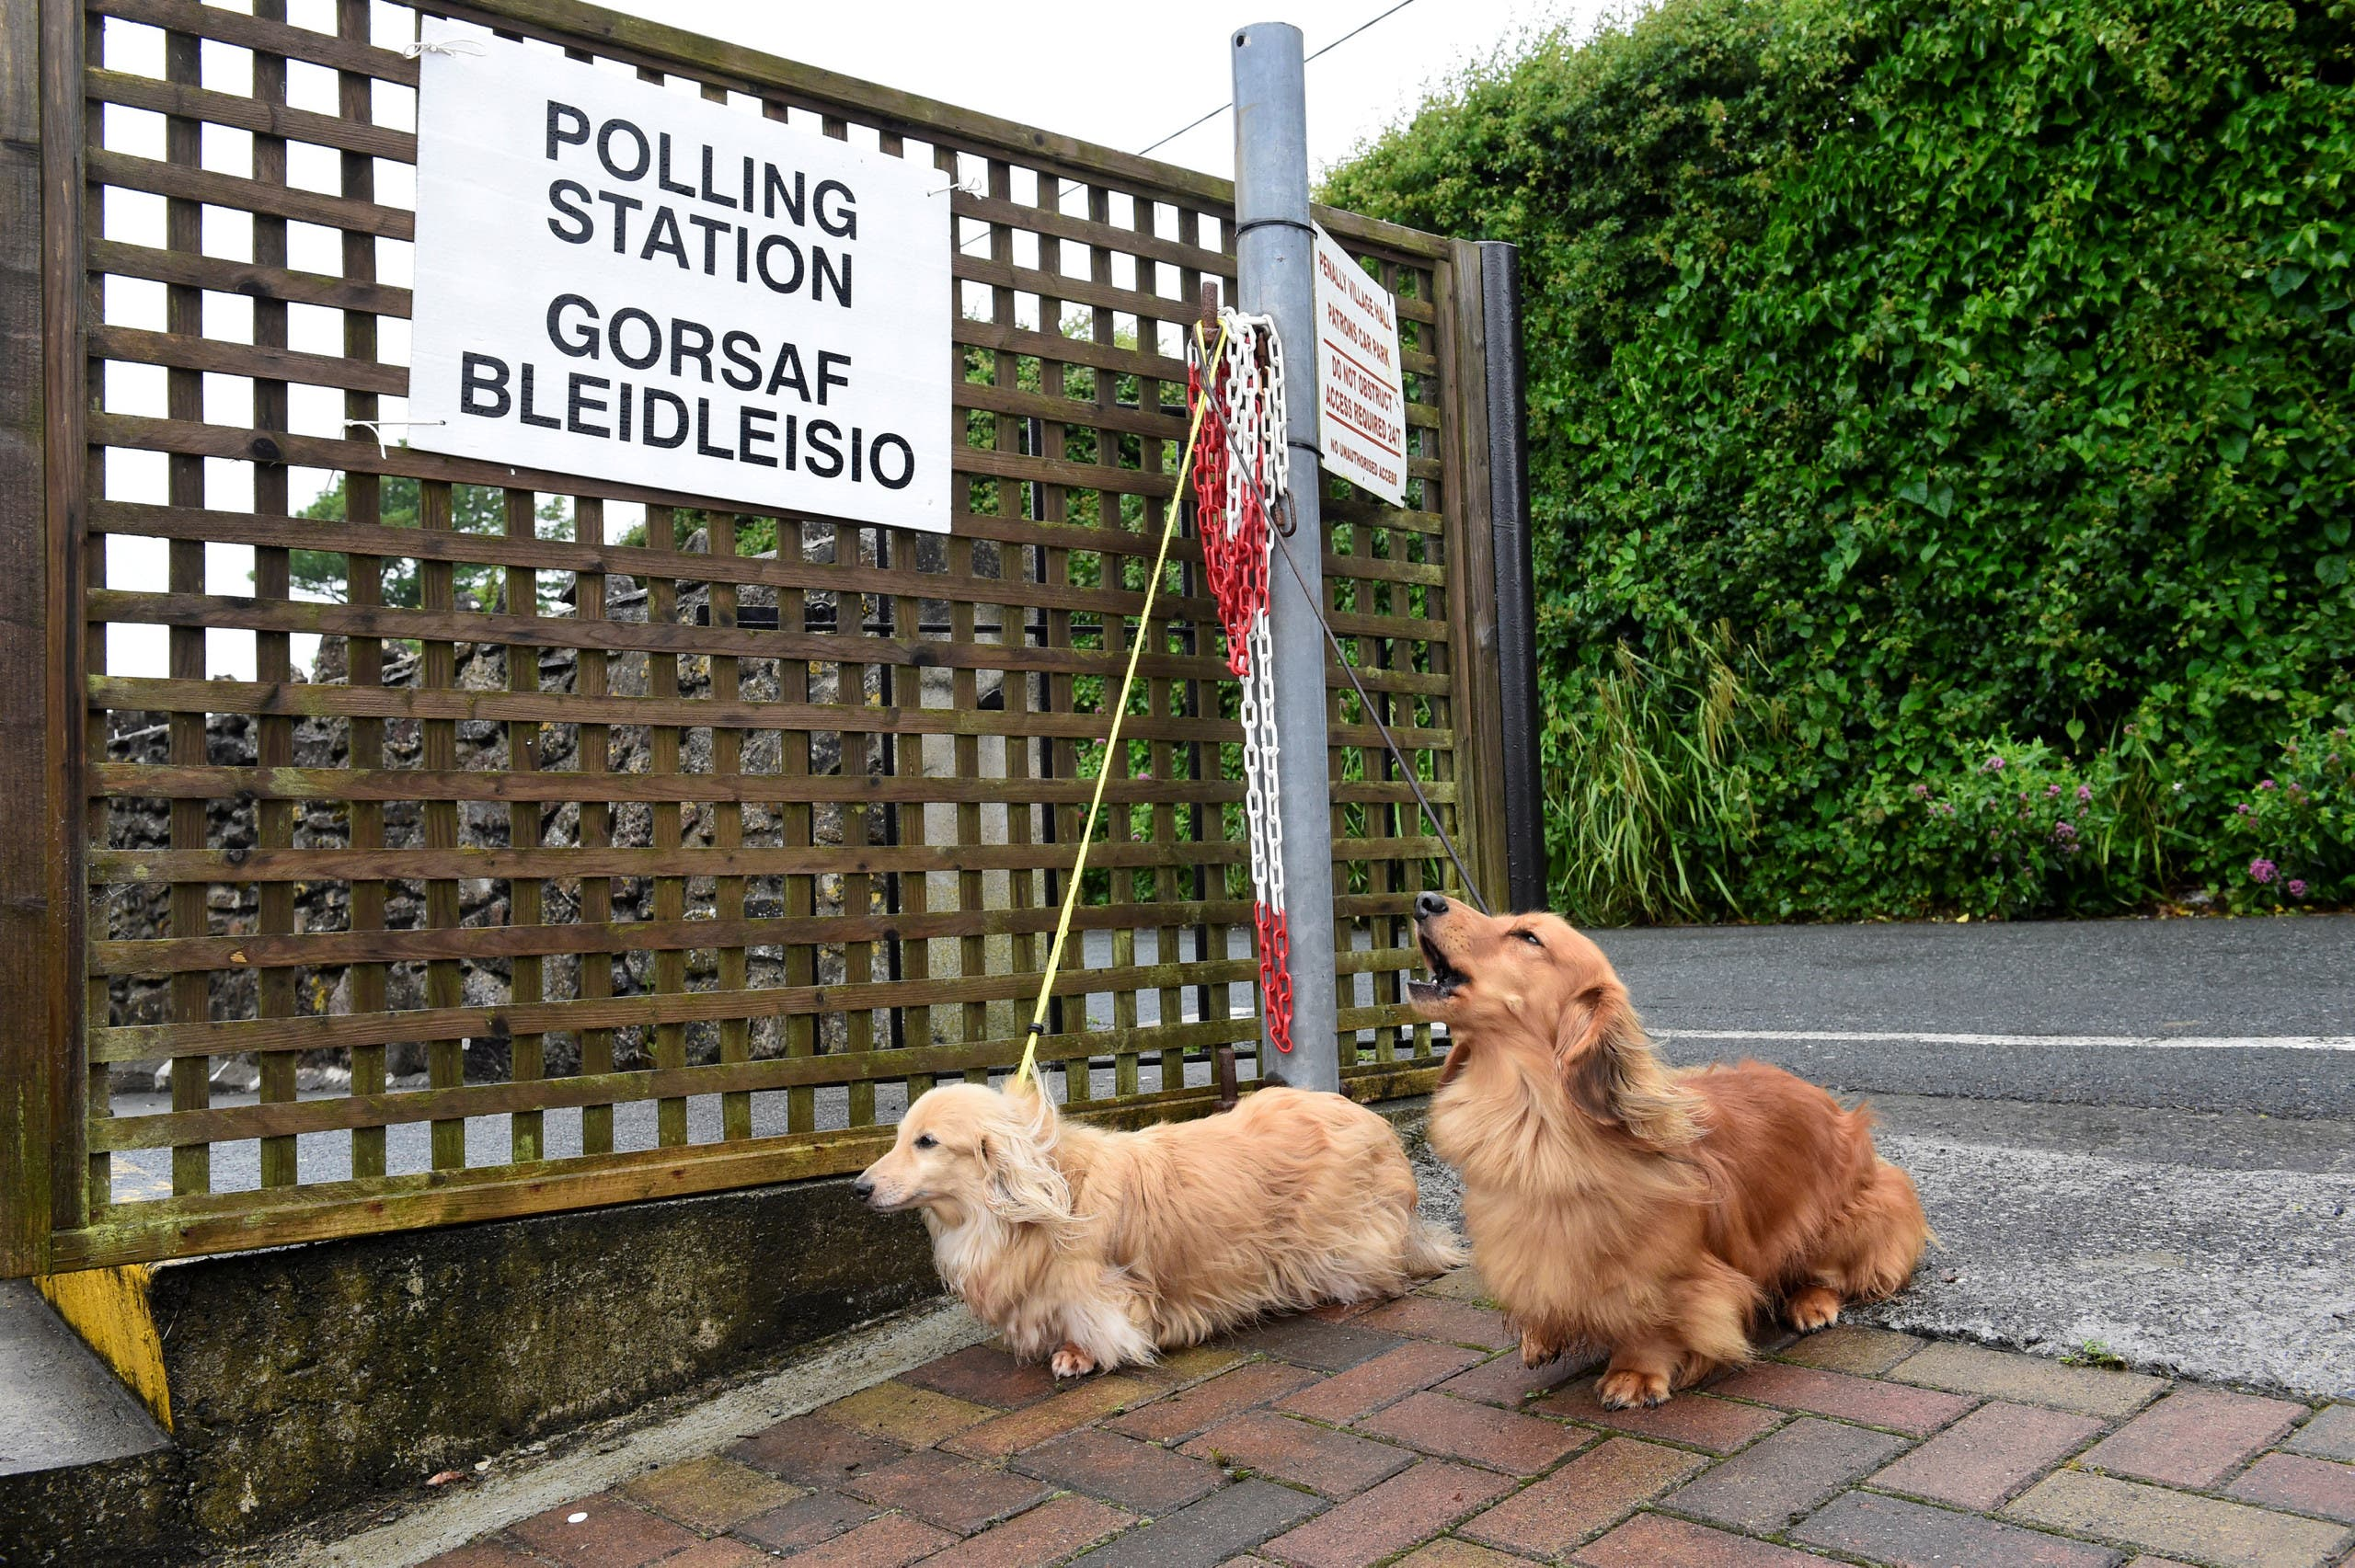 Dogs wait for their owner outside a polling station in Penally, Wales, Britain, June 8, 2017.reuters